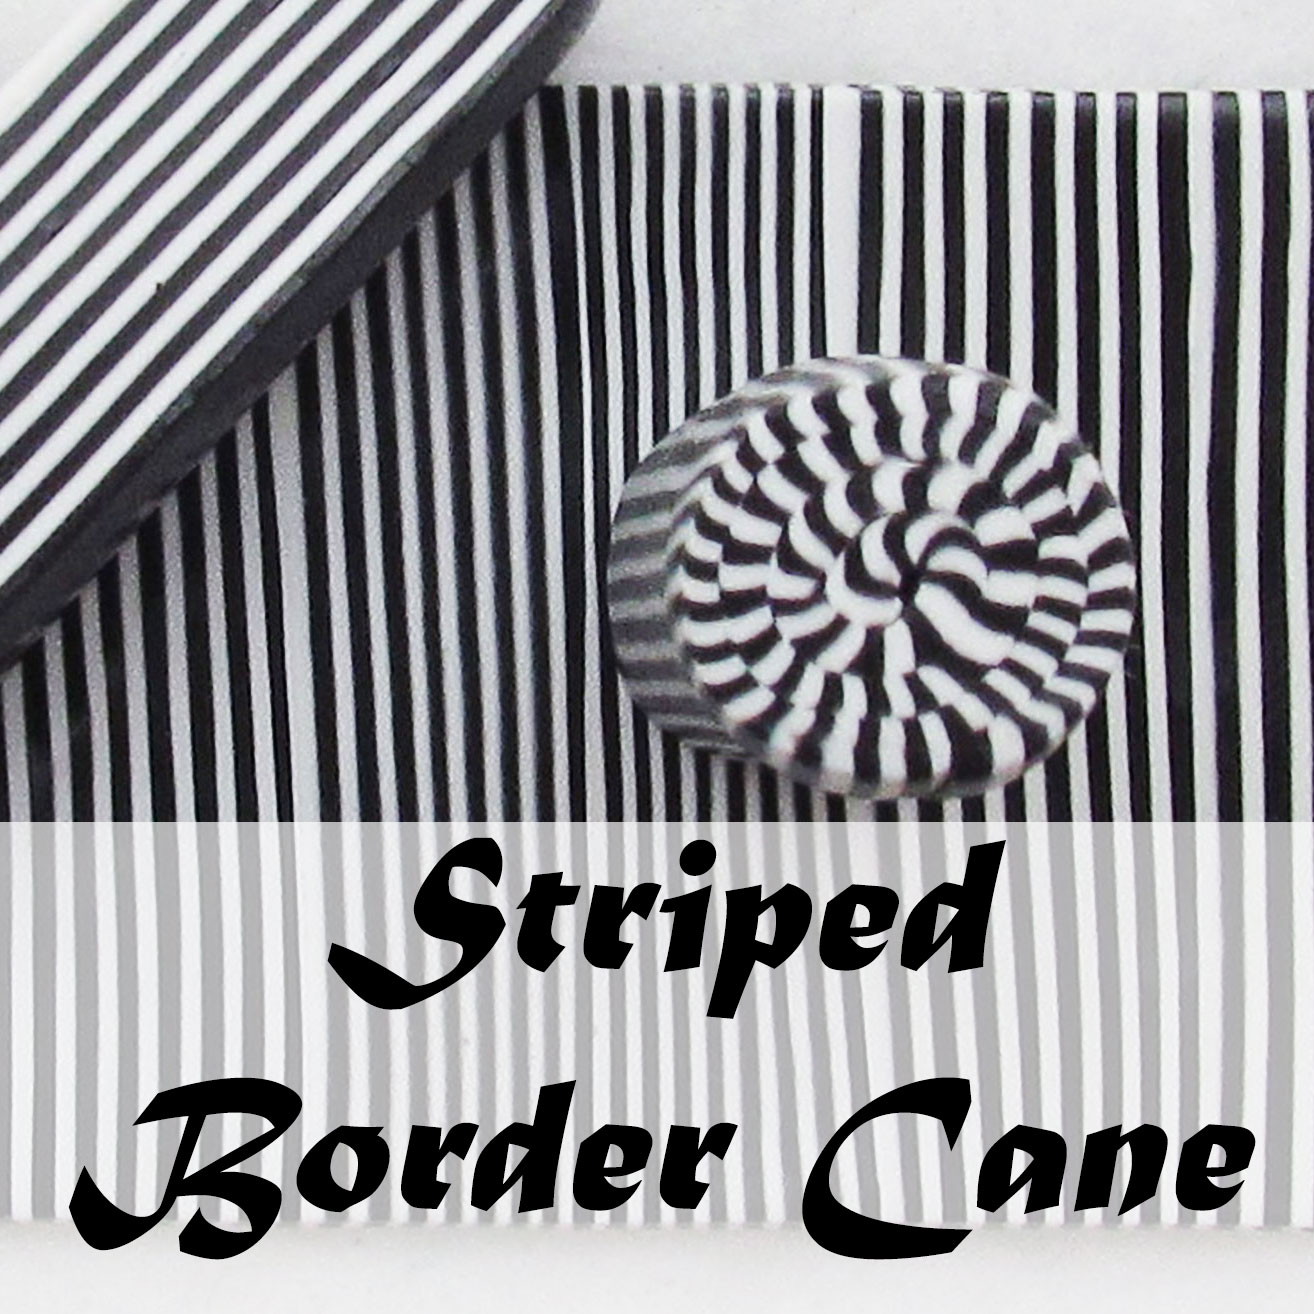 Polymer clay striped checkerboard border cane